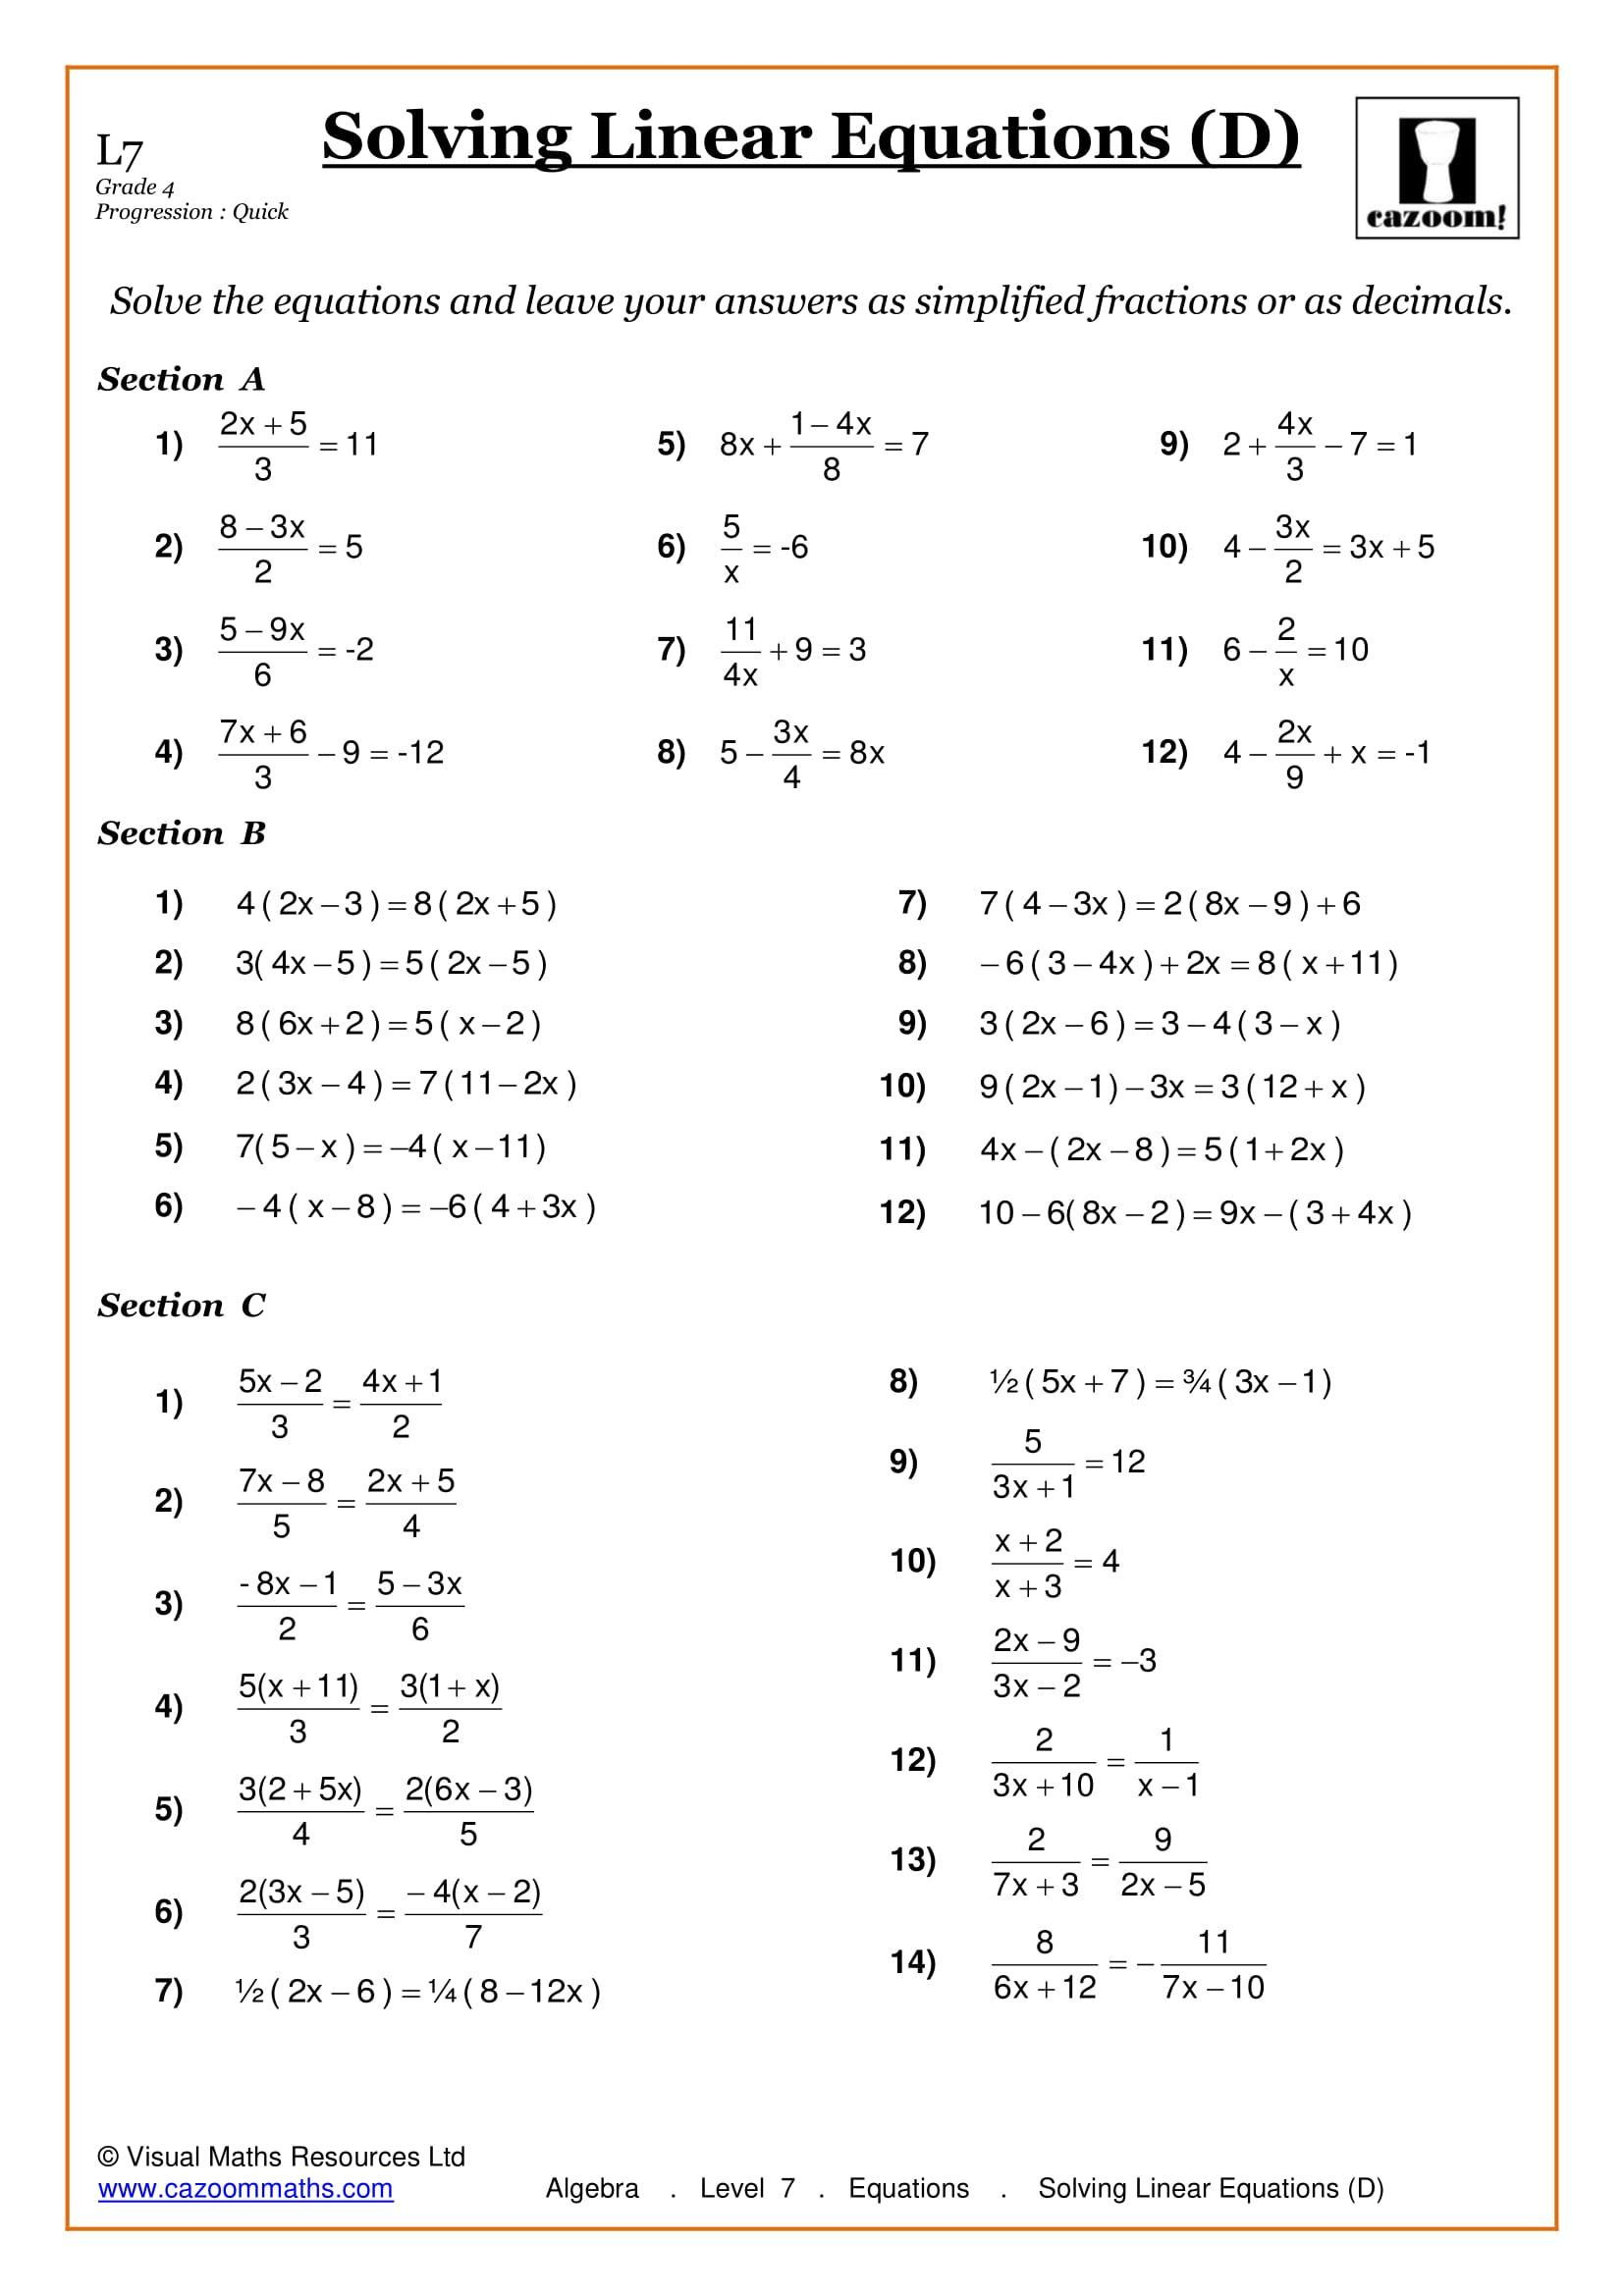 7 Adding And Subtracting Algebraic Fractions Worksheet In